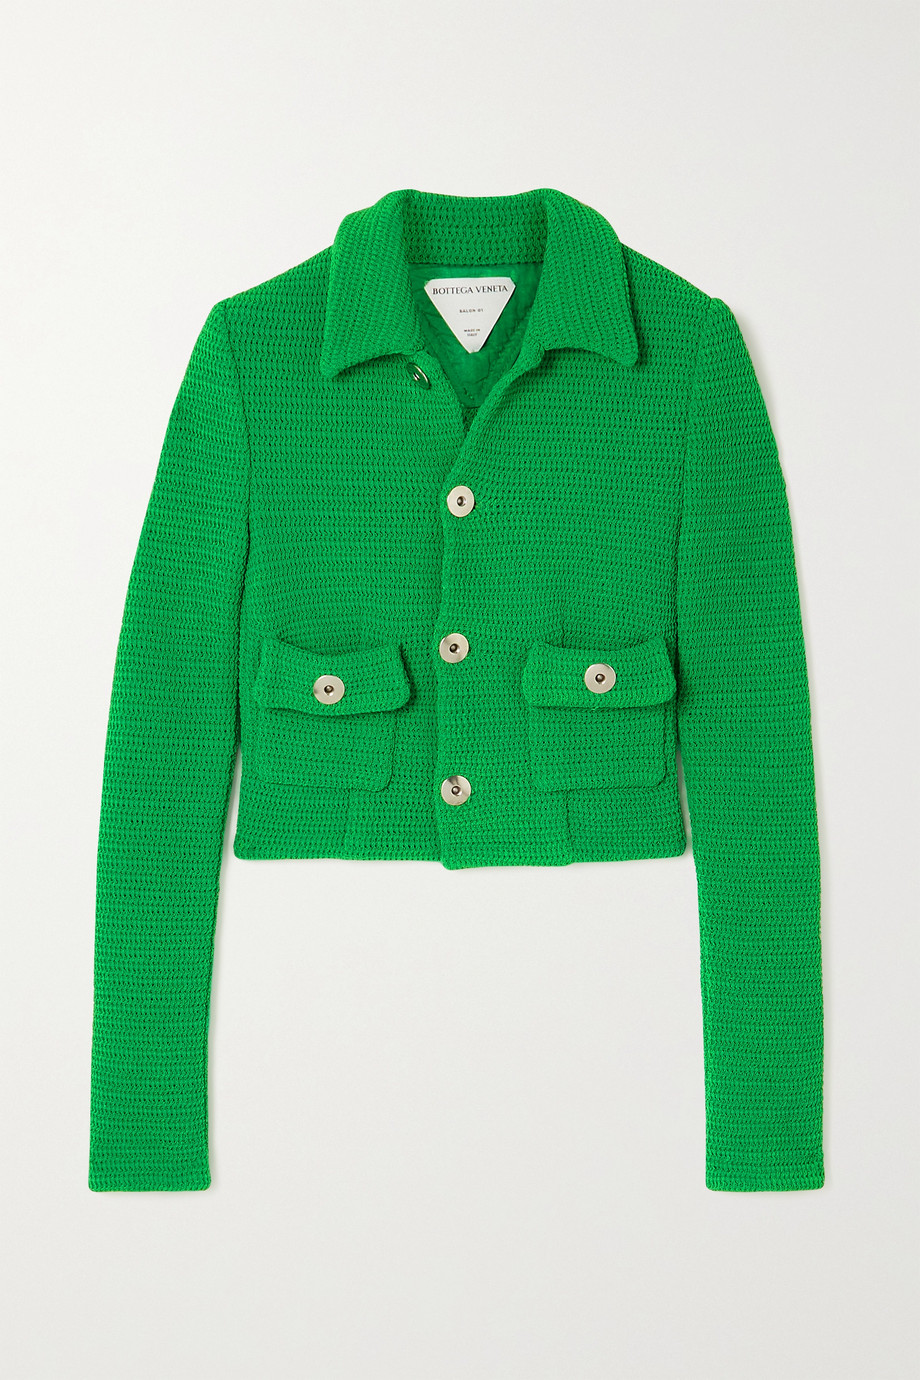 BOTTEGA VENETA Cropped open-knit cotton-blend jacket